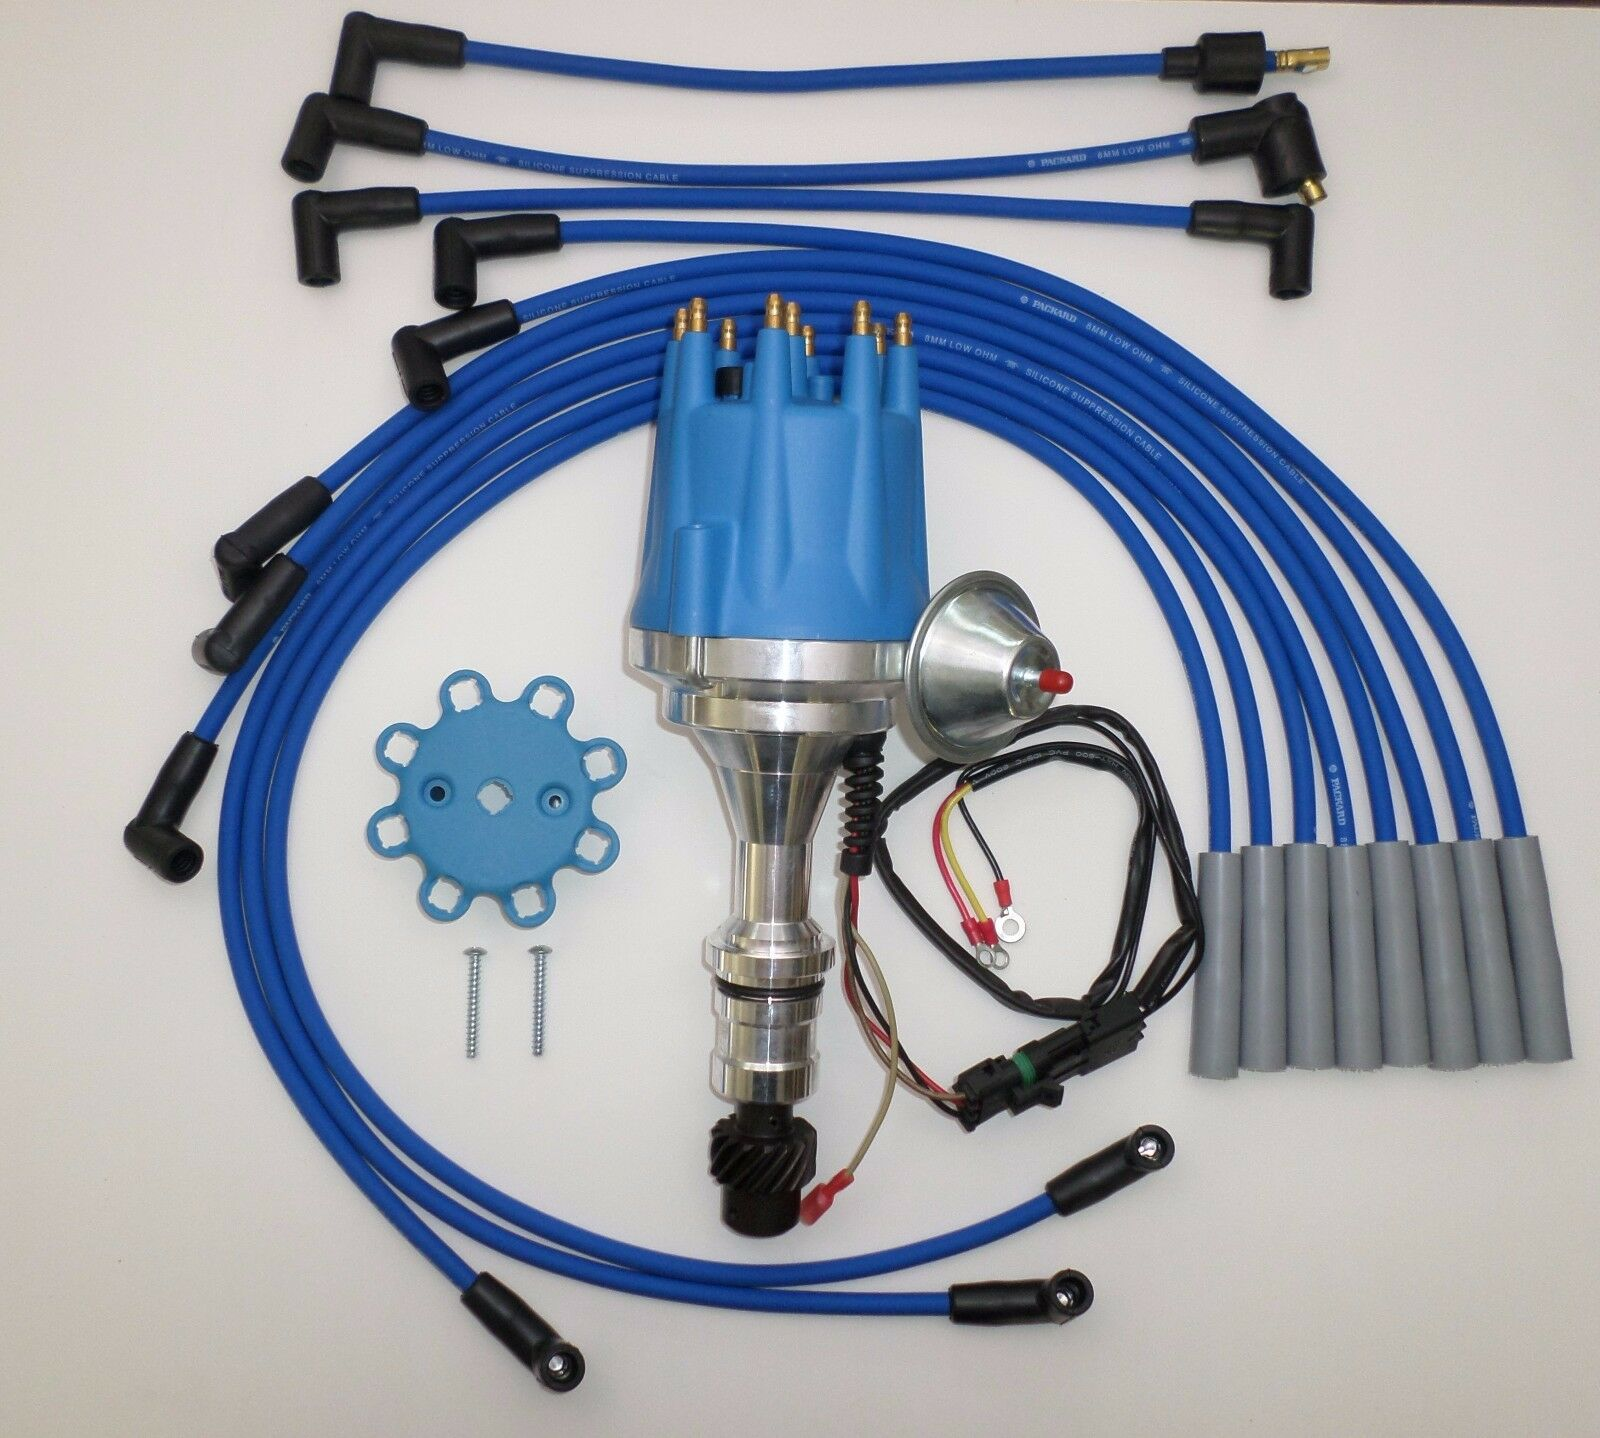 small cap OLDSMOBILE 350,400,403,455 HEI BLUE Distributor + SPARK PLUG WIRES  USA 1 of 6FREE Shipping small cap OLDSMOBILE ...